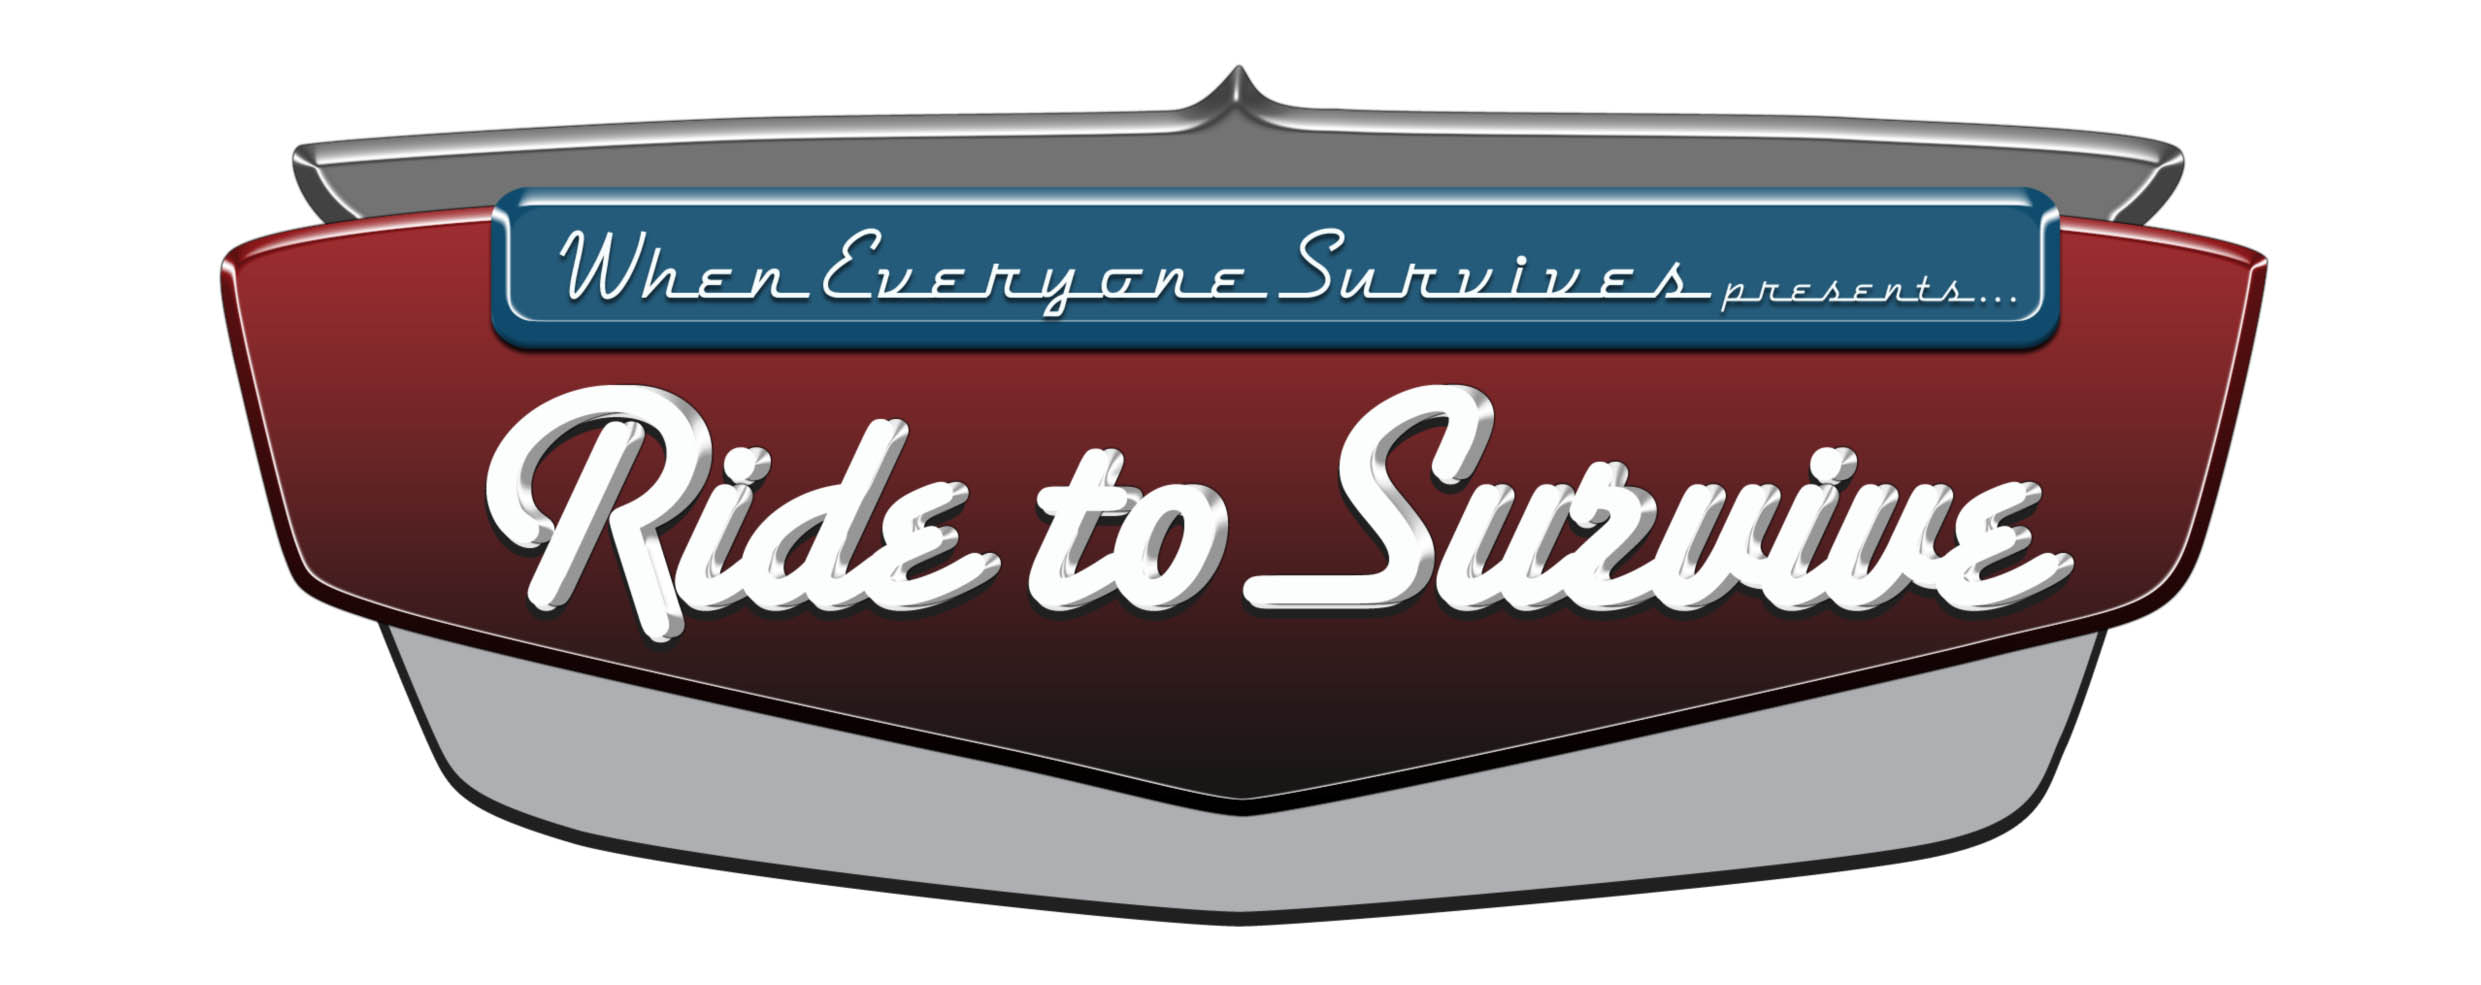 Ride_to_Survive_LogoFB.jpg